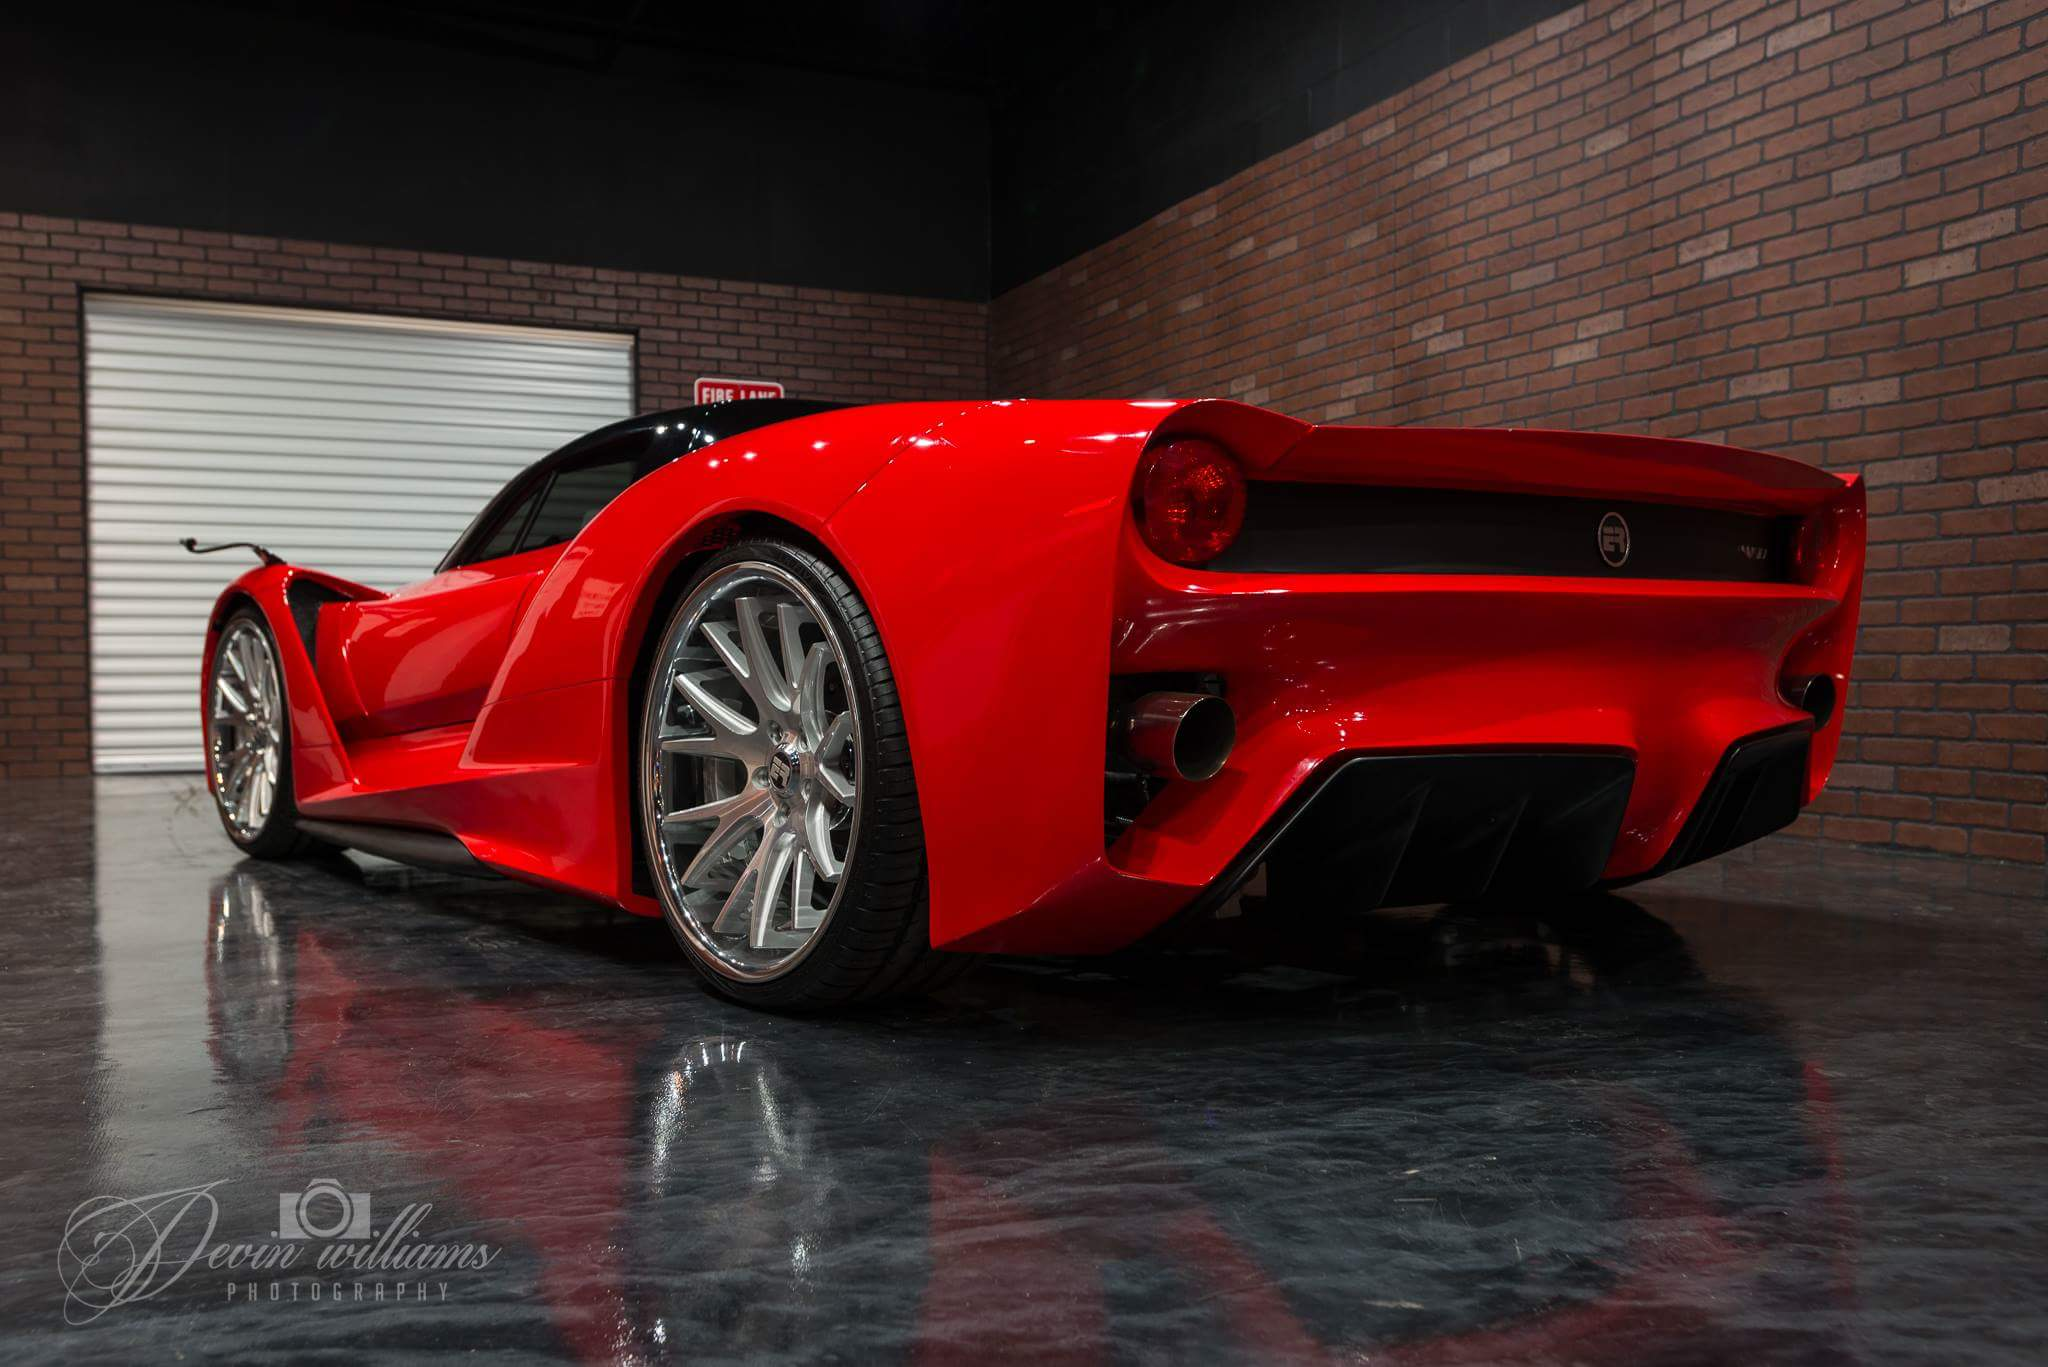 New ER W70 Supercar is a LaFerrari Look Alike...or Not!